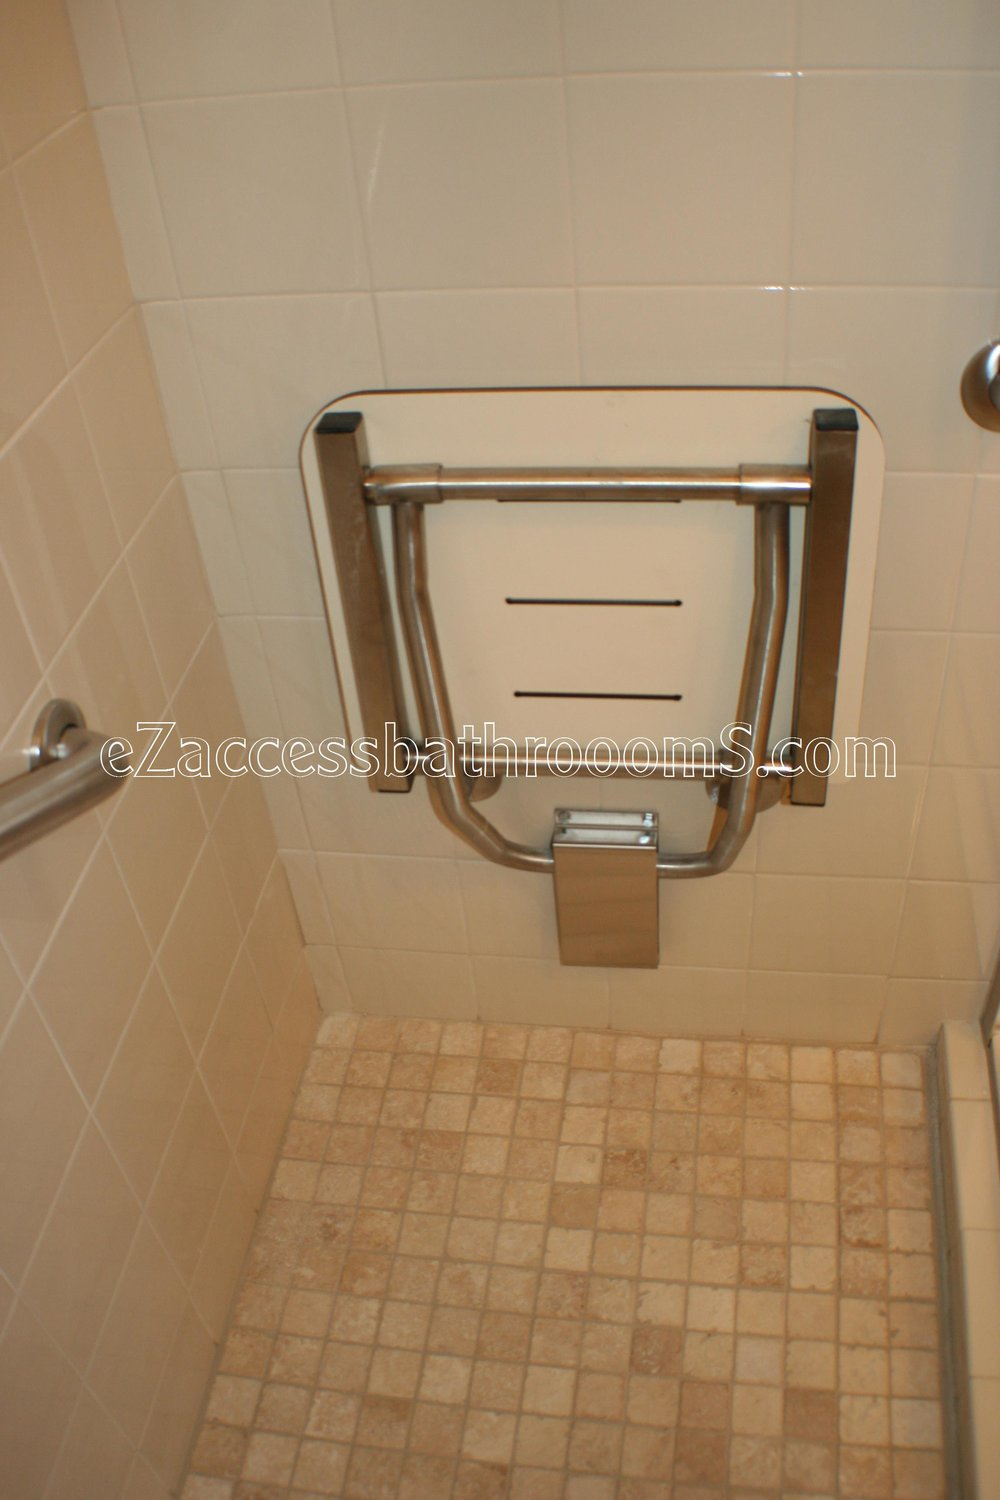 TUBTOSHOWERS CONVERSIONS EZACCESSBATHROOMS.COM 832202843 BRYANT 156.JPG